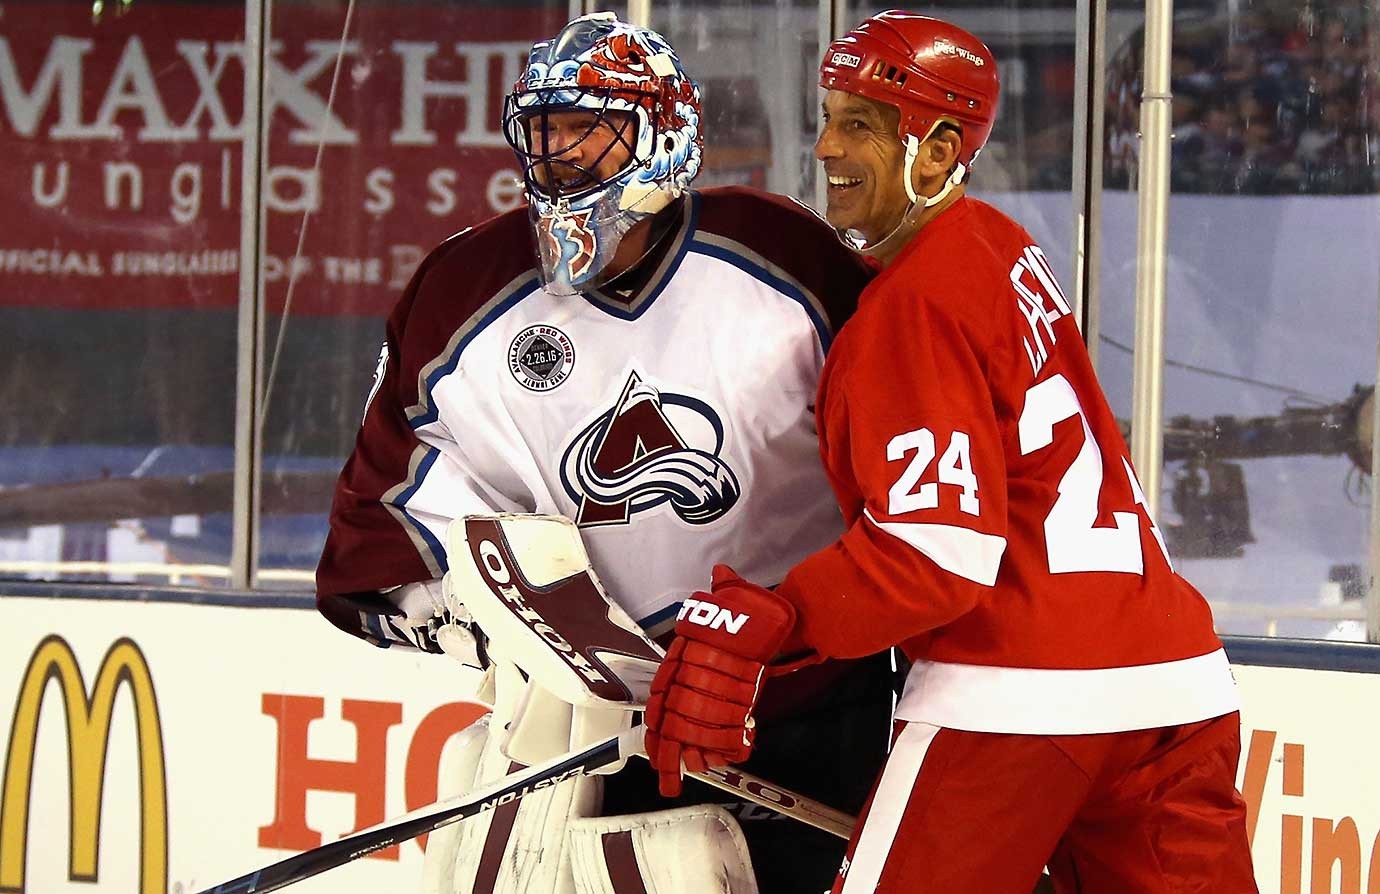 Patrick Roy of the Avalanche Alumni and Chris Chelios of the Red Wings Alumni share a laugh.